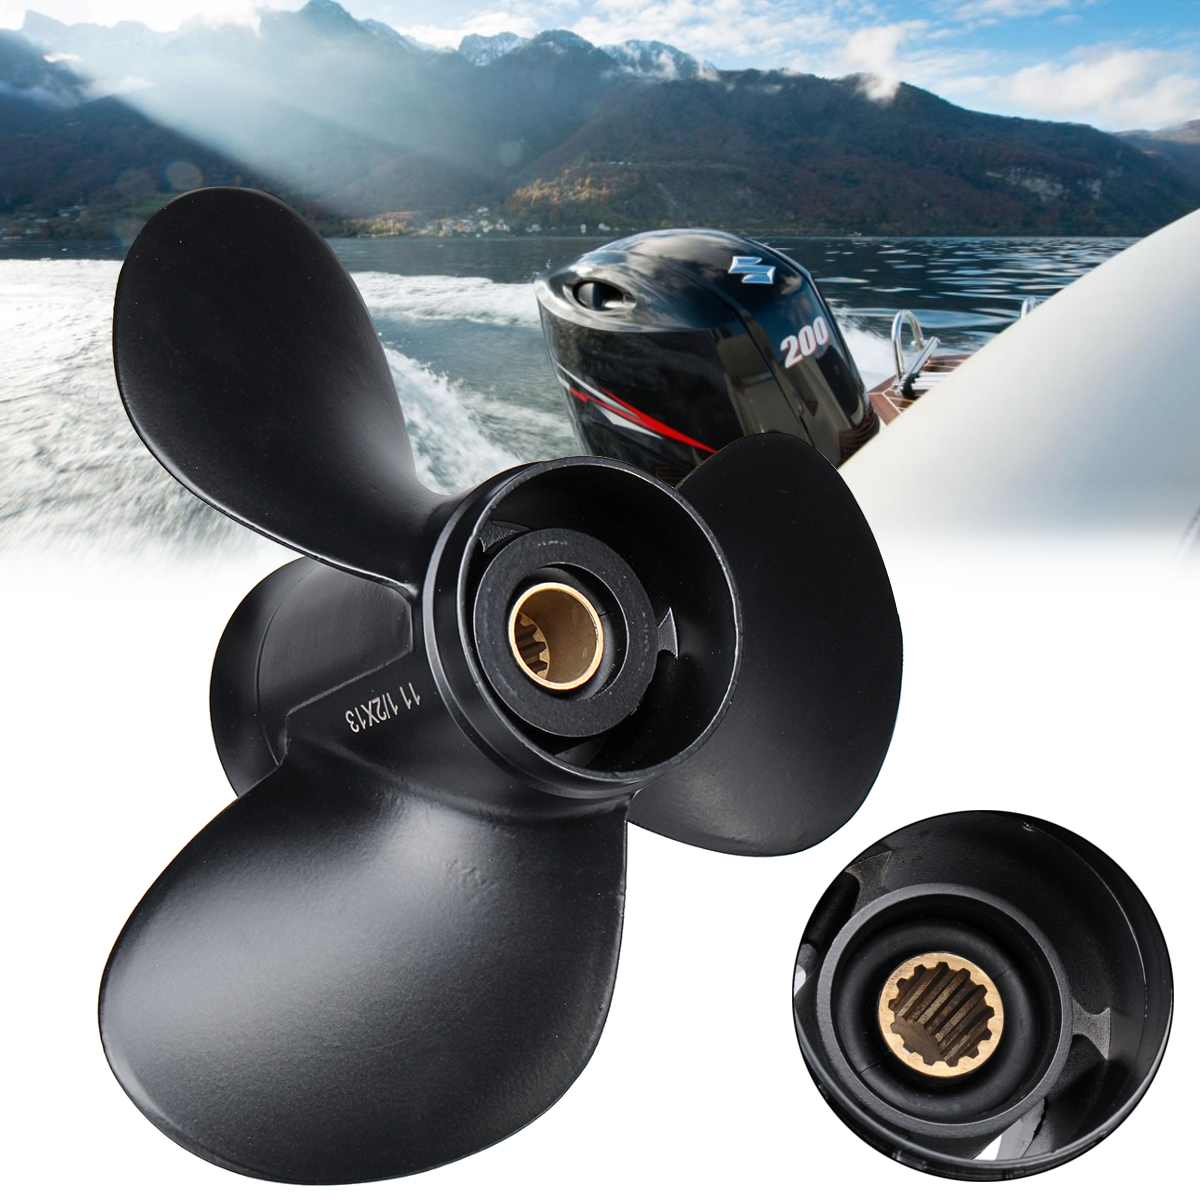 58100-94313-019 11 1/2 X 13 Inch Aluminum Alloy Boat Outboard Propeller For Suzuki 35-65HP 3 Blades 13 Spline Tooths R Rotation